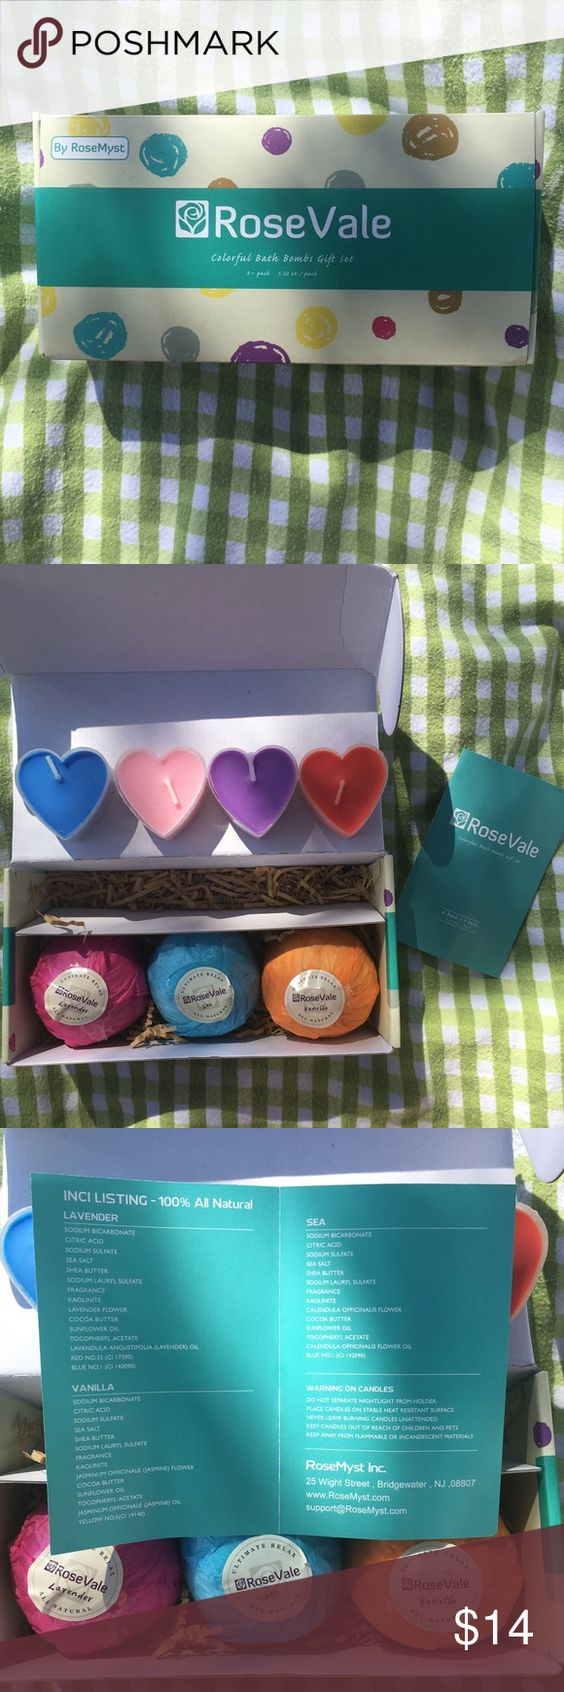 Bath bomb gift set. Bath bomb gift set with tea lights. Brand new without tags since it was purchased online. Other